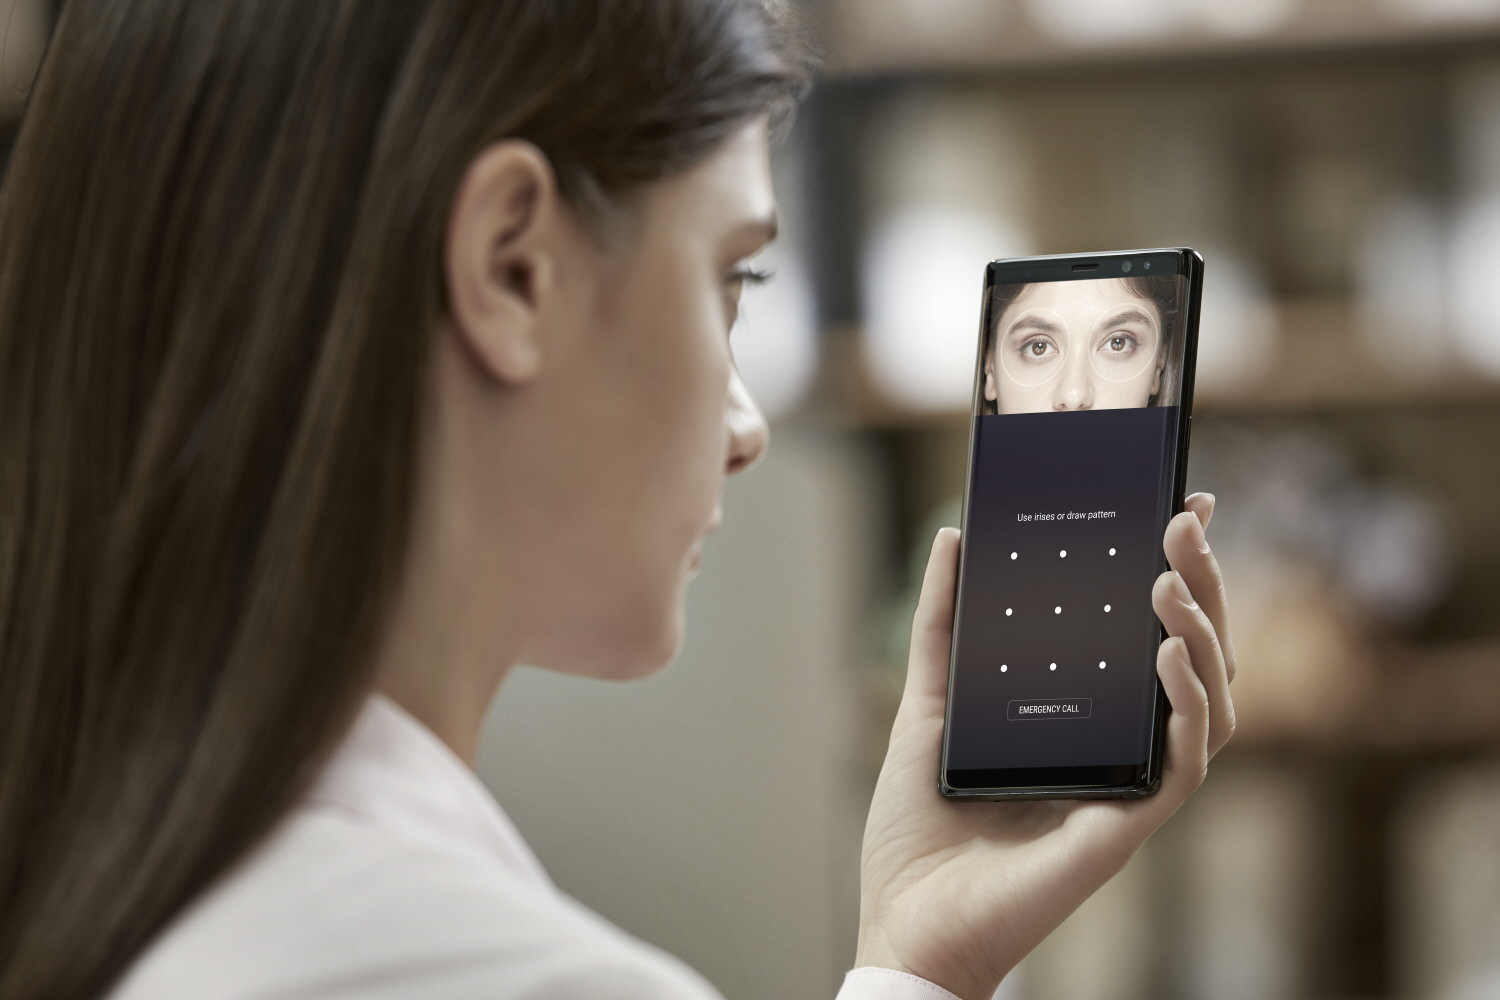 Galaxy Note8 Iris Scanner